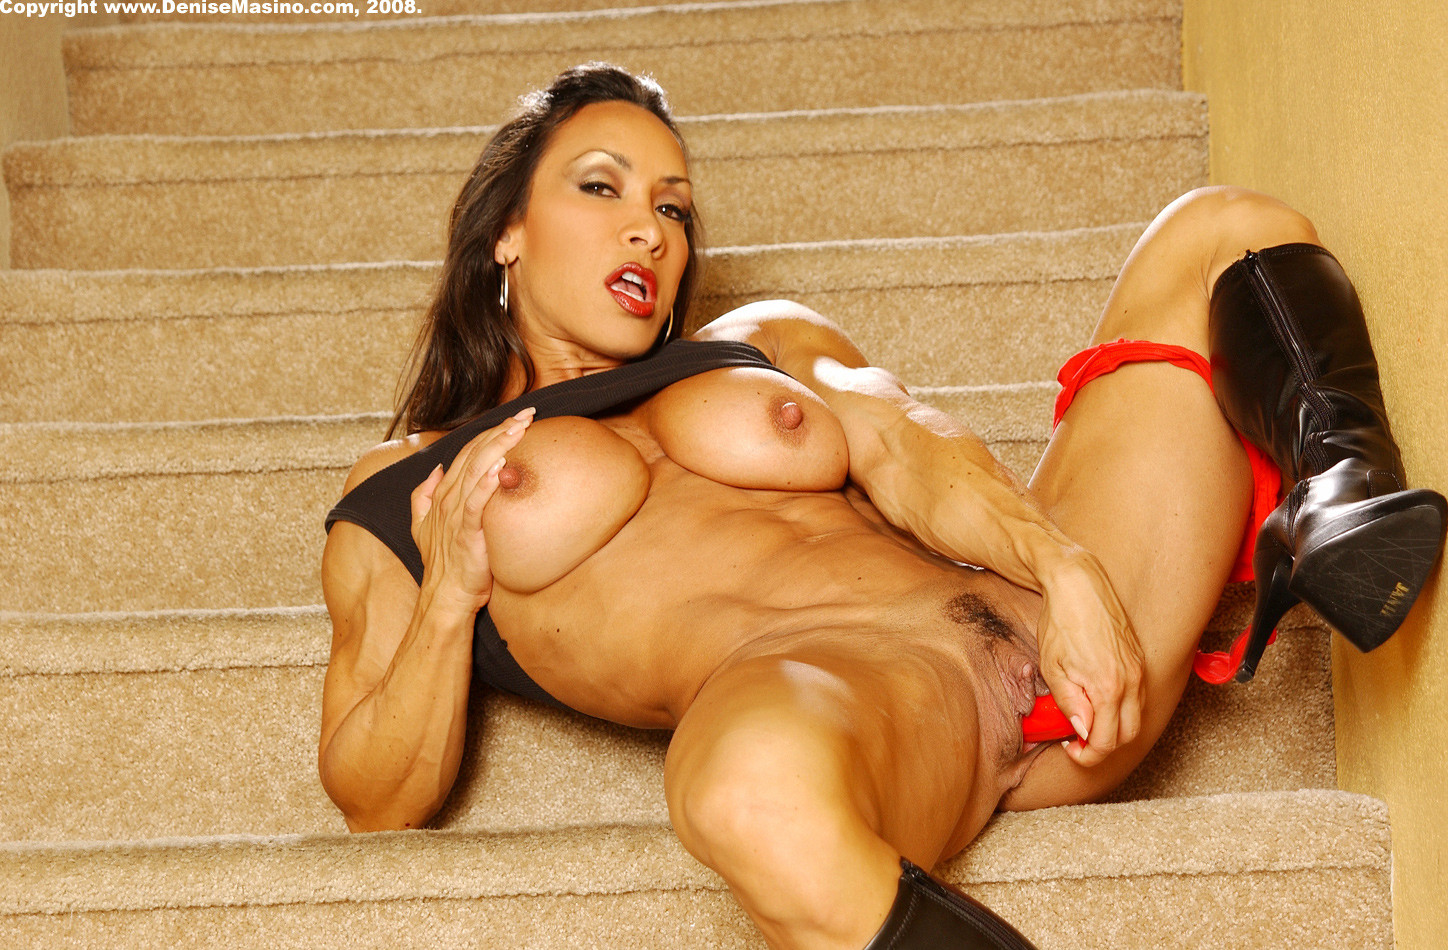 Female bodybuilder denise masino sex